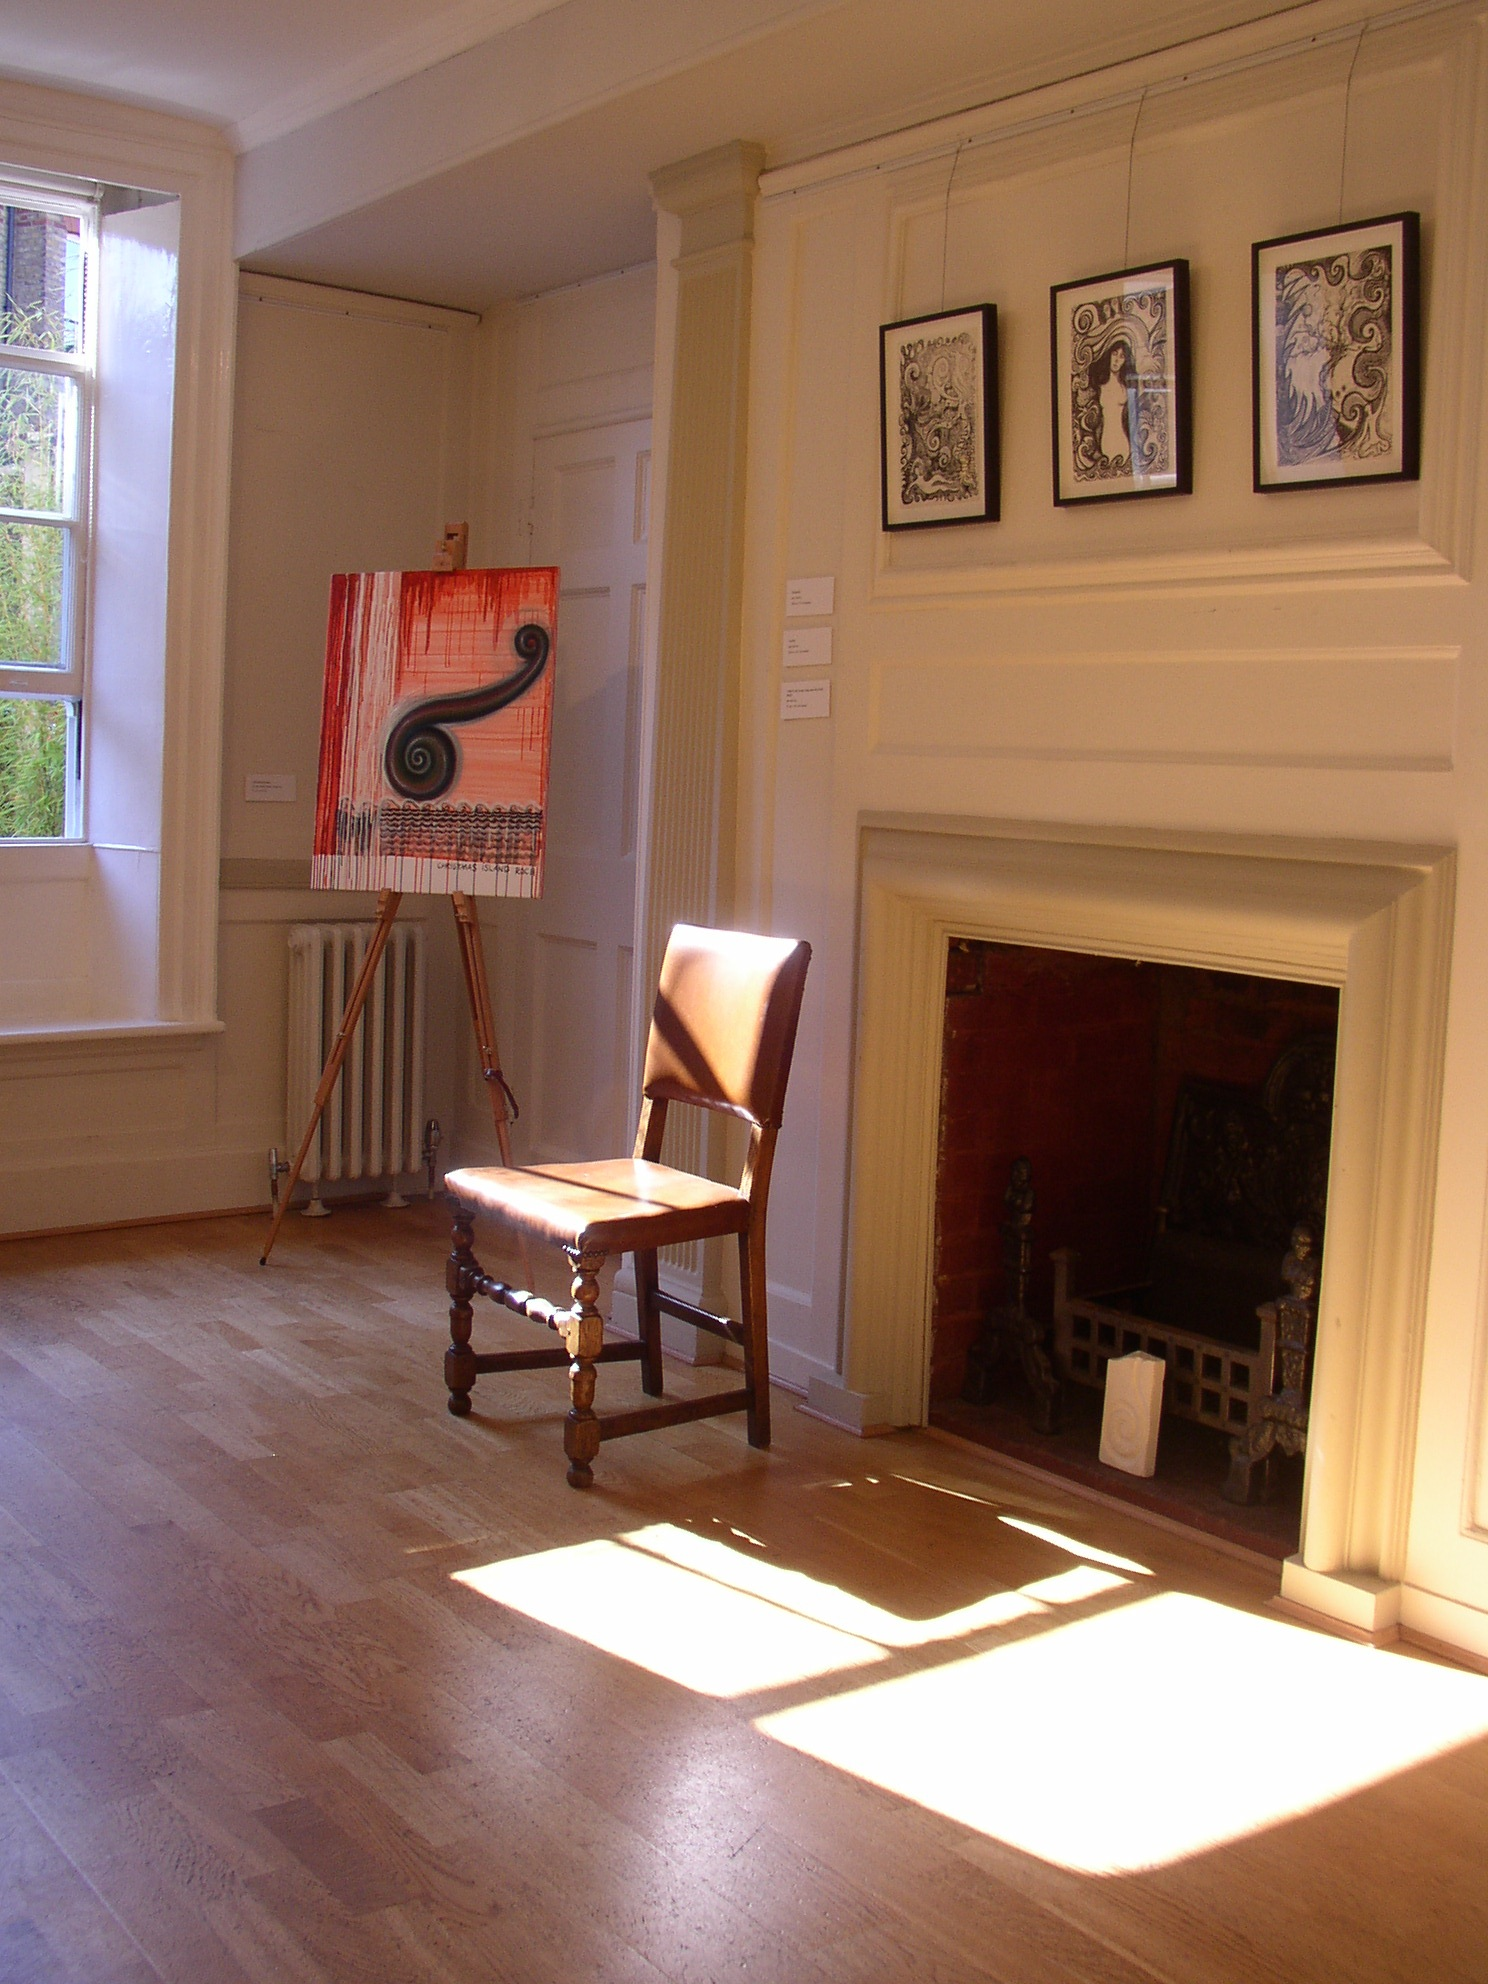 Regan O'Callaghan Burgh House, Hampstead, London, gallery space, Koru, exhibition